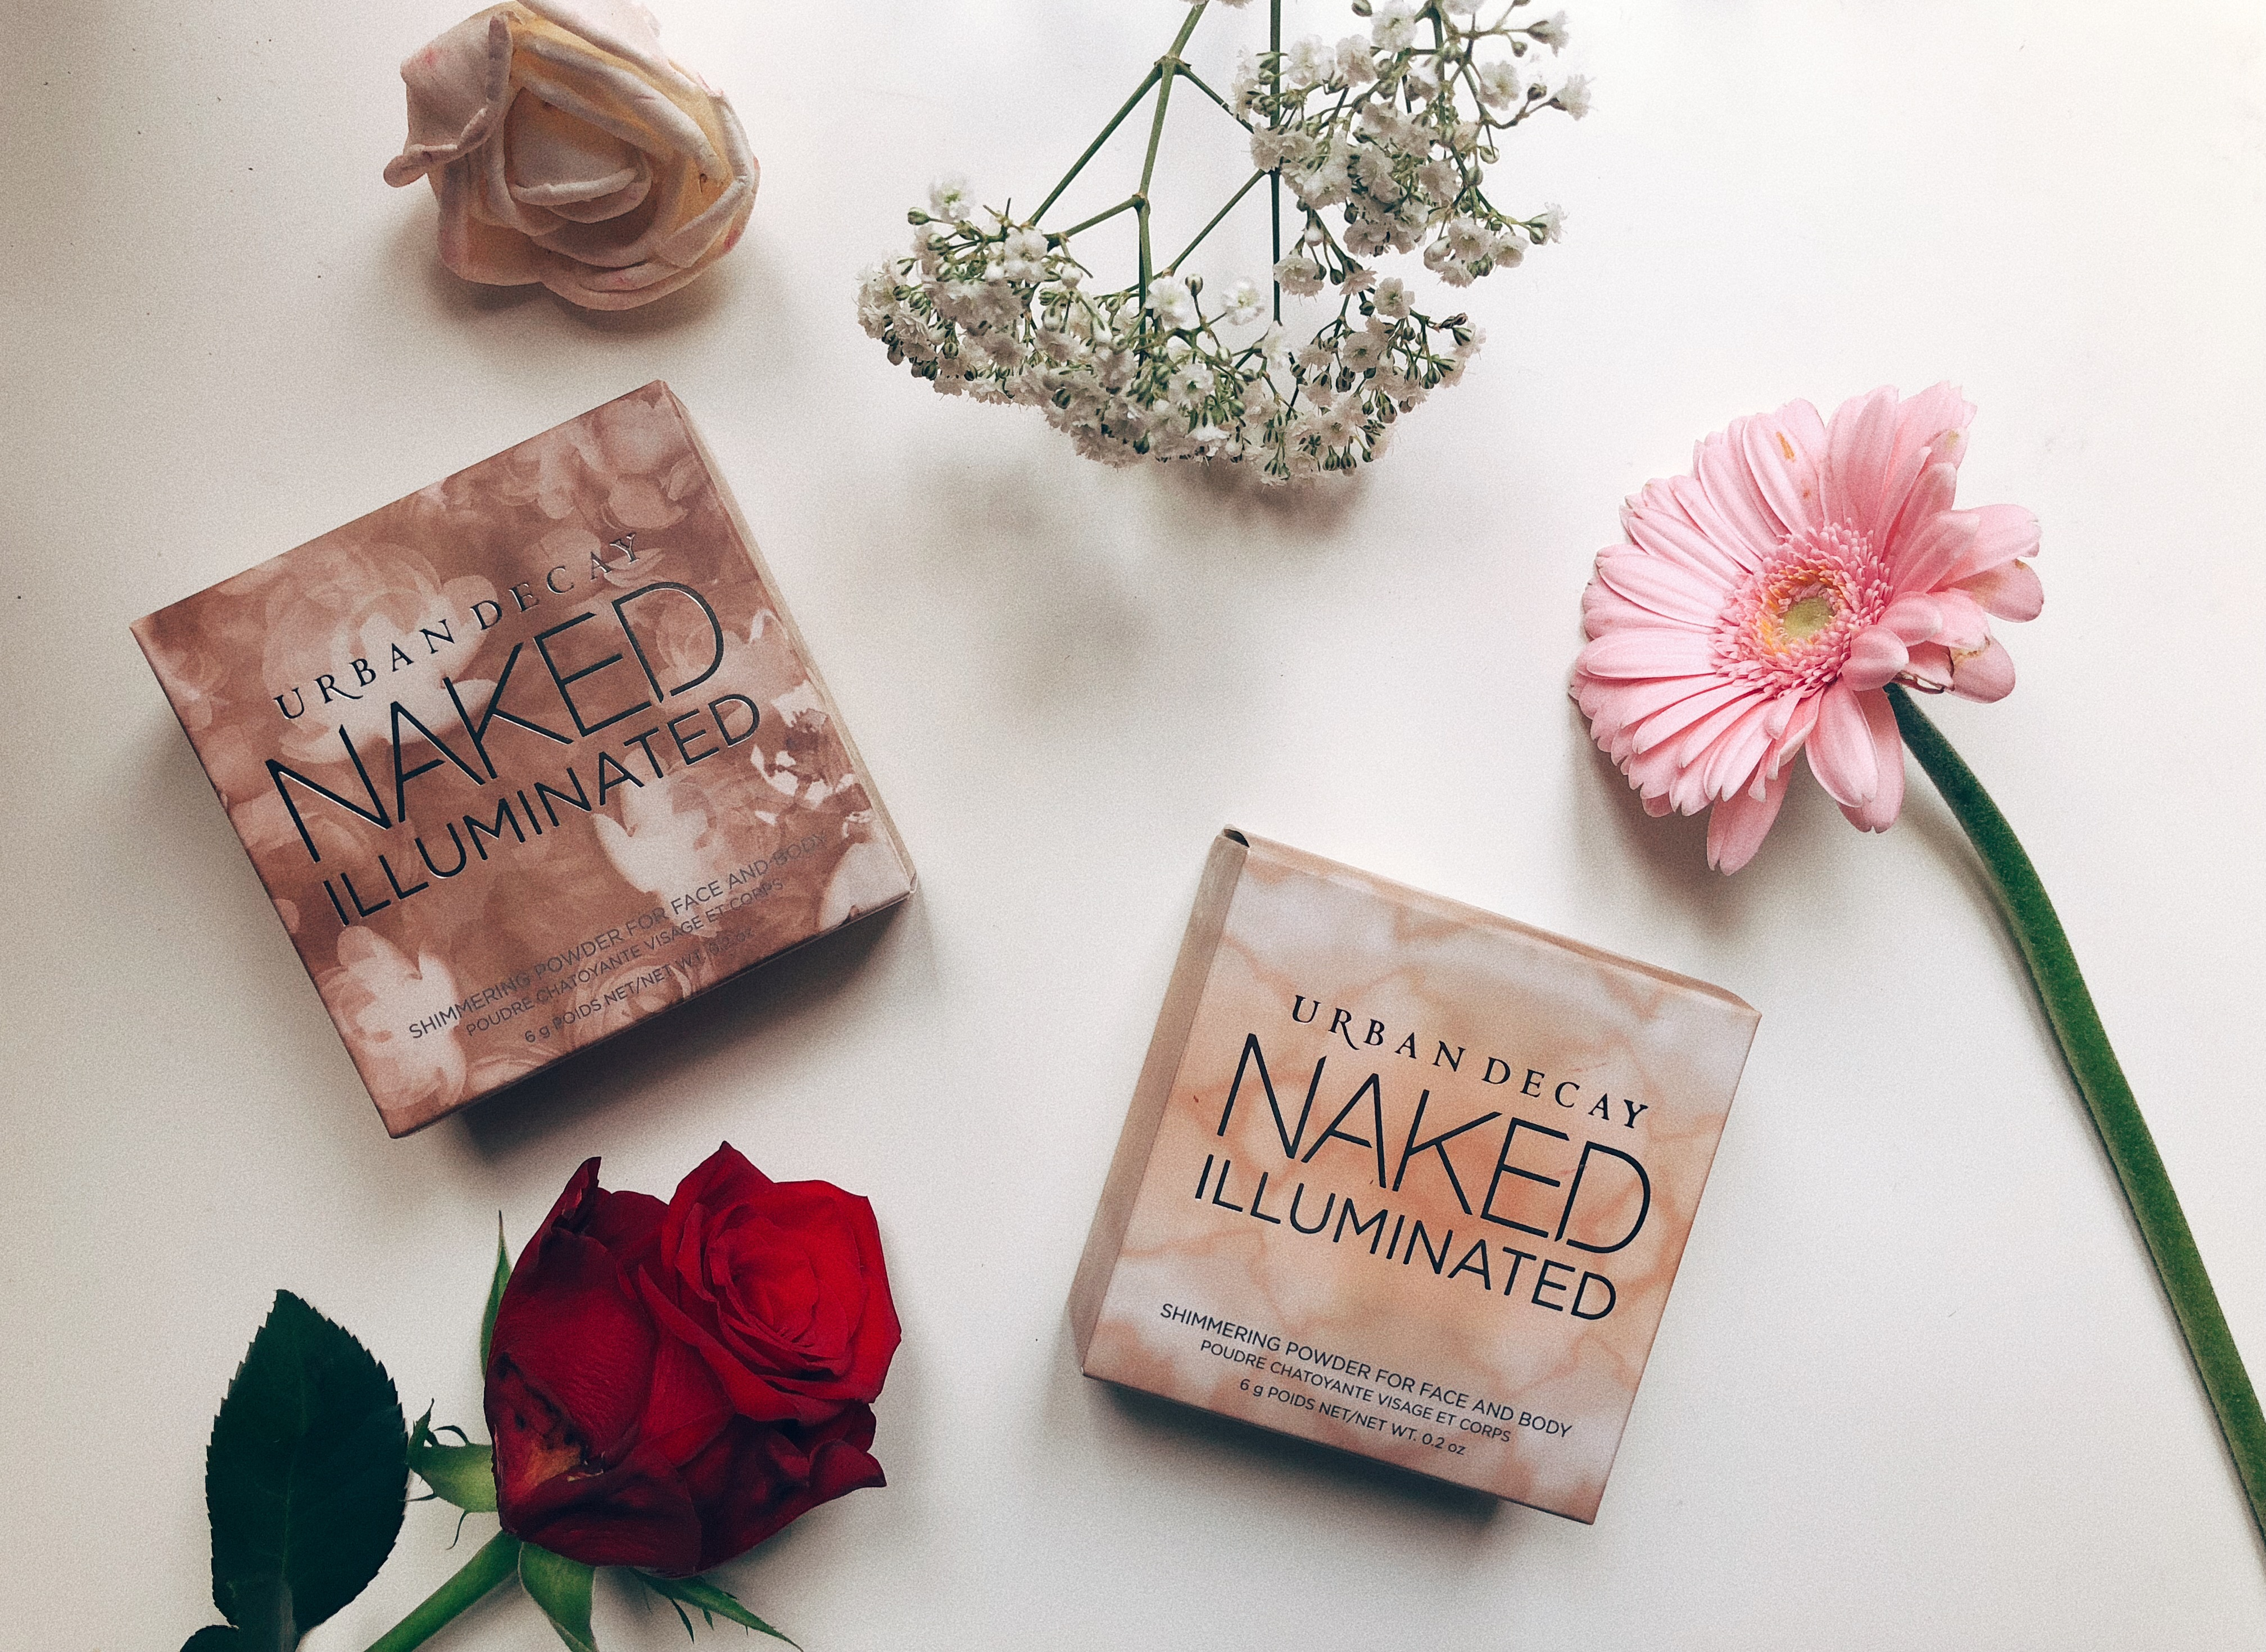 URBAN DECAY NAKED ILLUMINATED POWDERS: REVIEW, SWATCHES AND PHOTOS